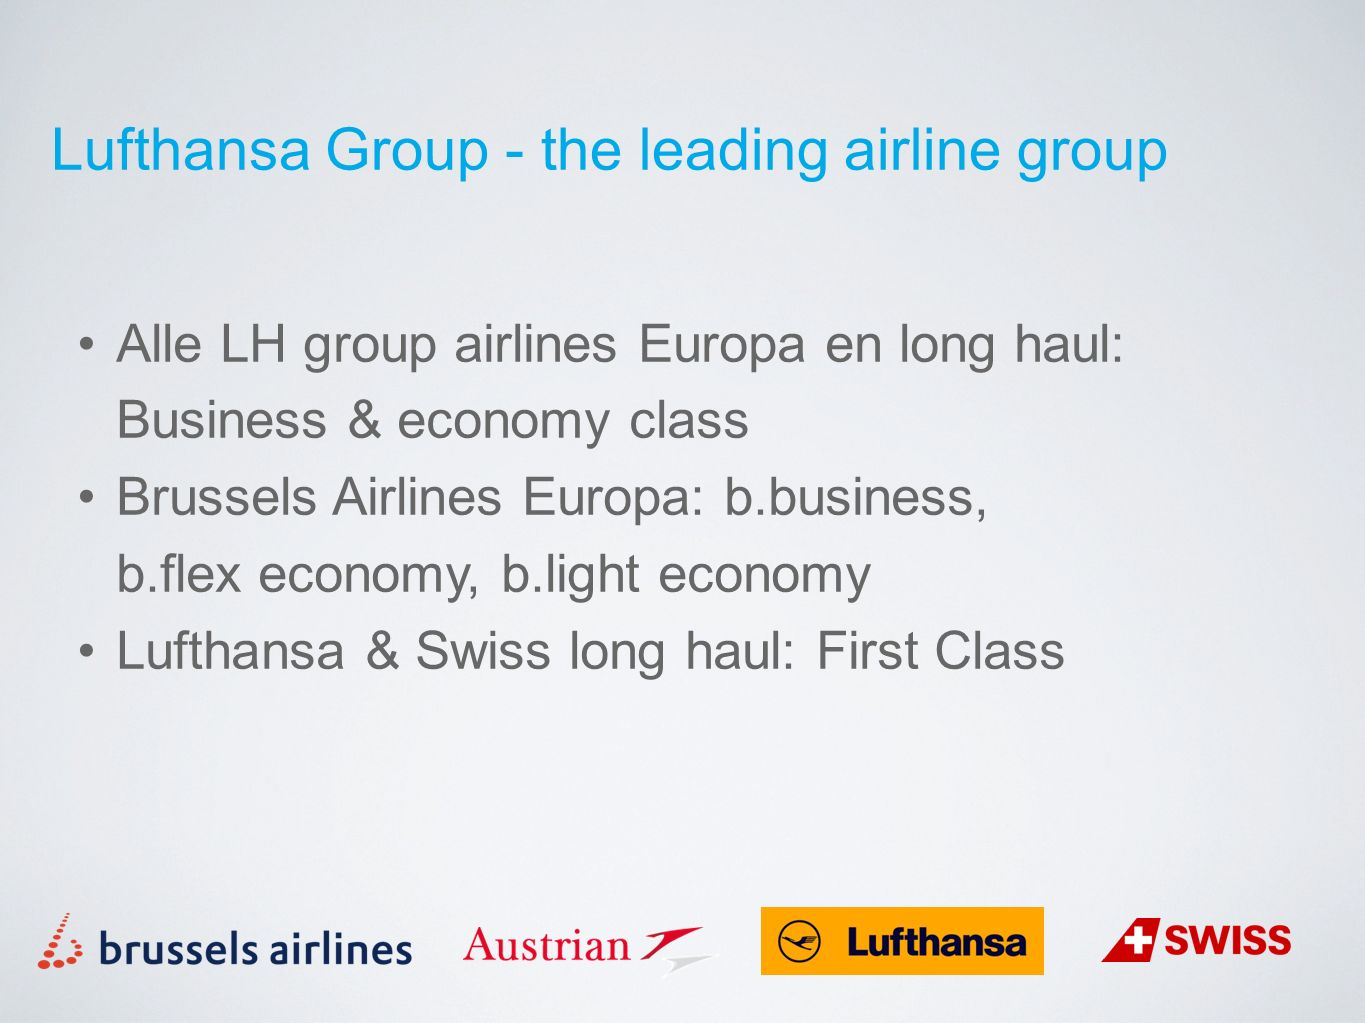 Alle LH group airlines Europa en long haul: Business & economy class Brussels Airlines Europa: b.business, b.flex economy, b.light economy Lufthansa & Swiss long haul: First Class Lufthansa Group - the leading airline group